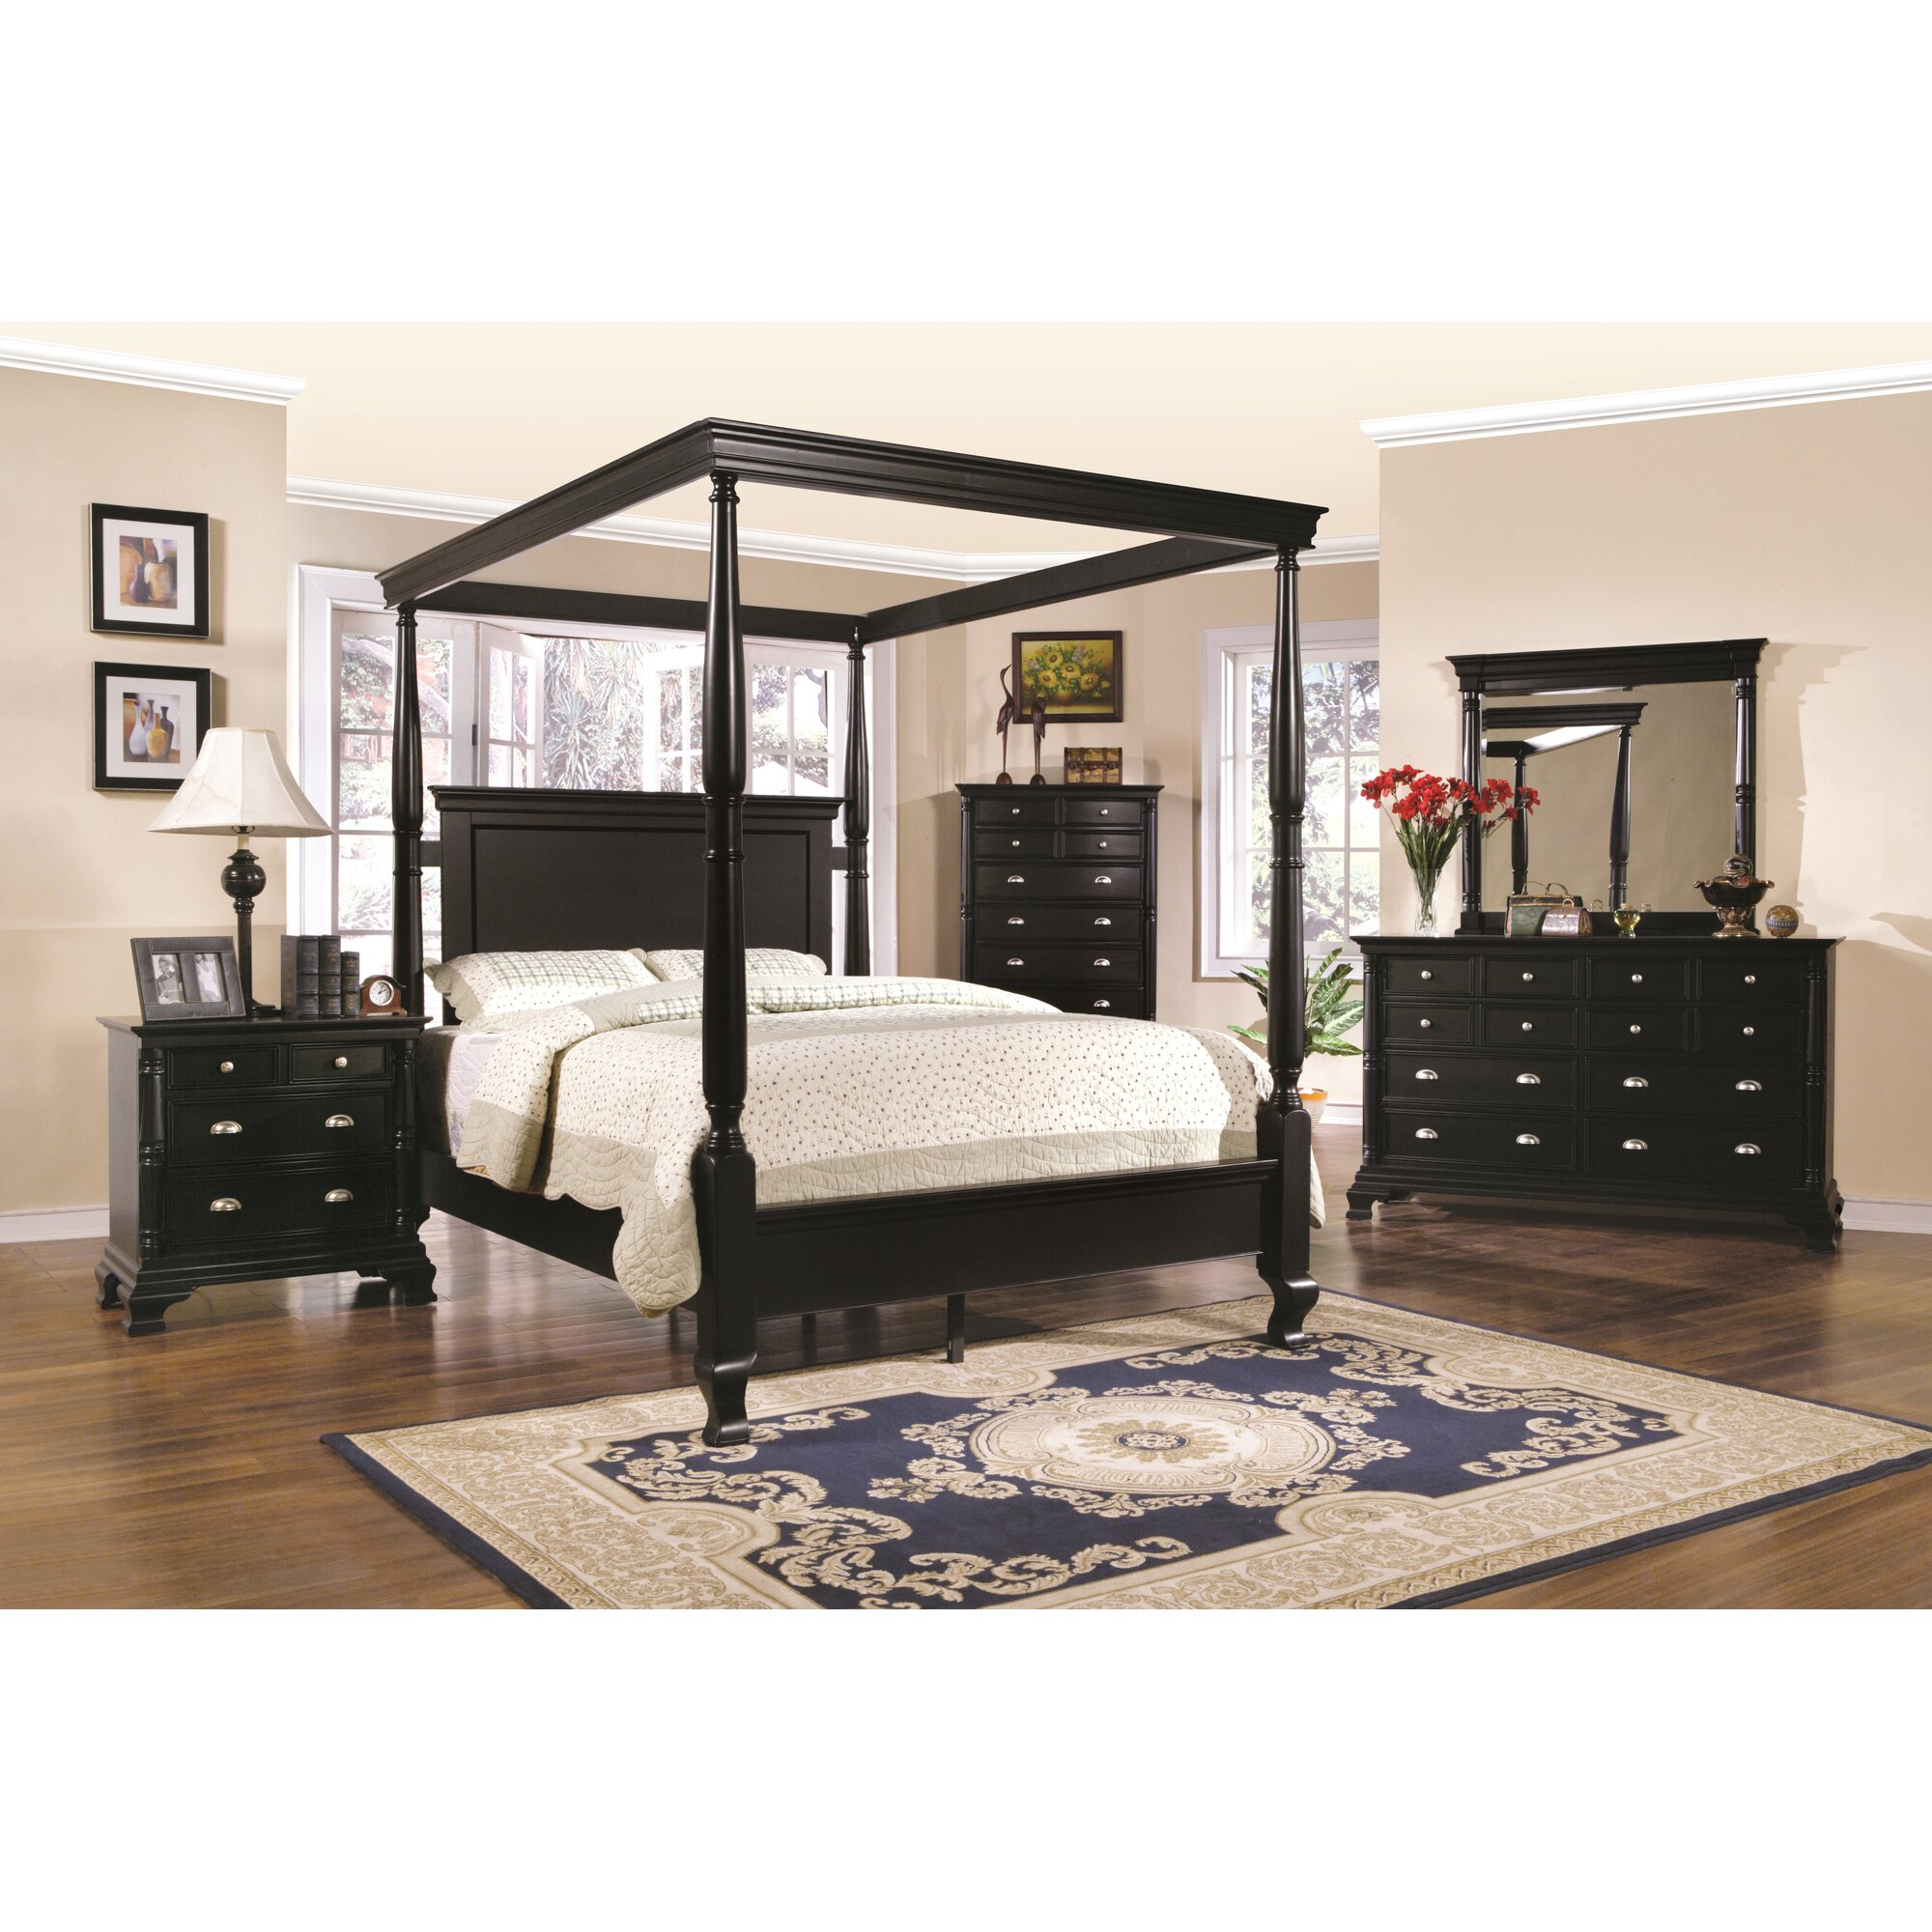 Wildon Home St Regis Queen Canopy Customizable Bedroom Set Reviews Wayfair